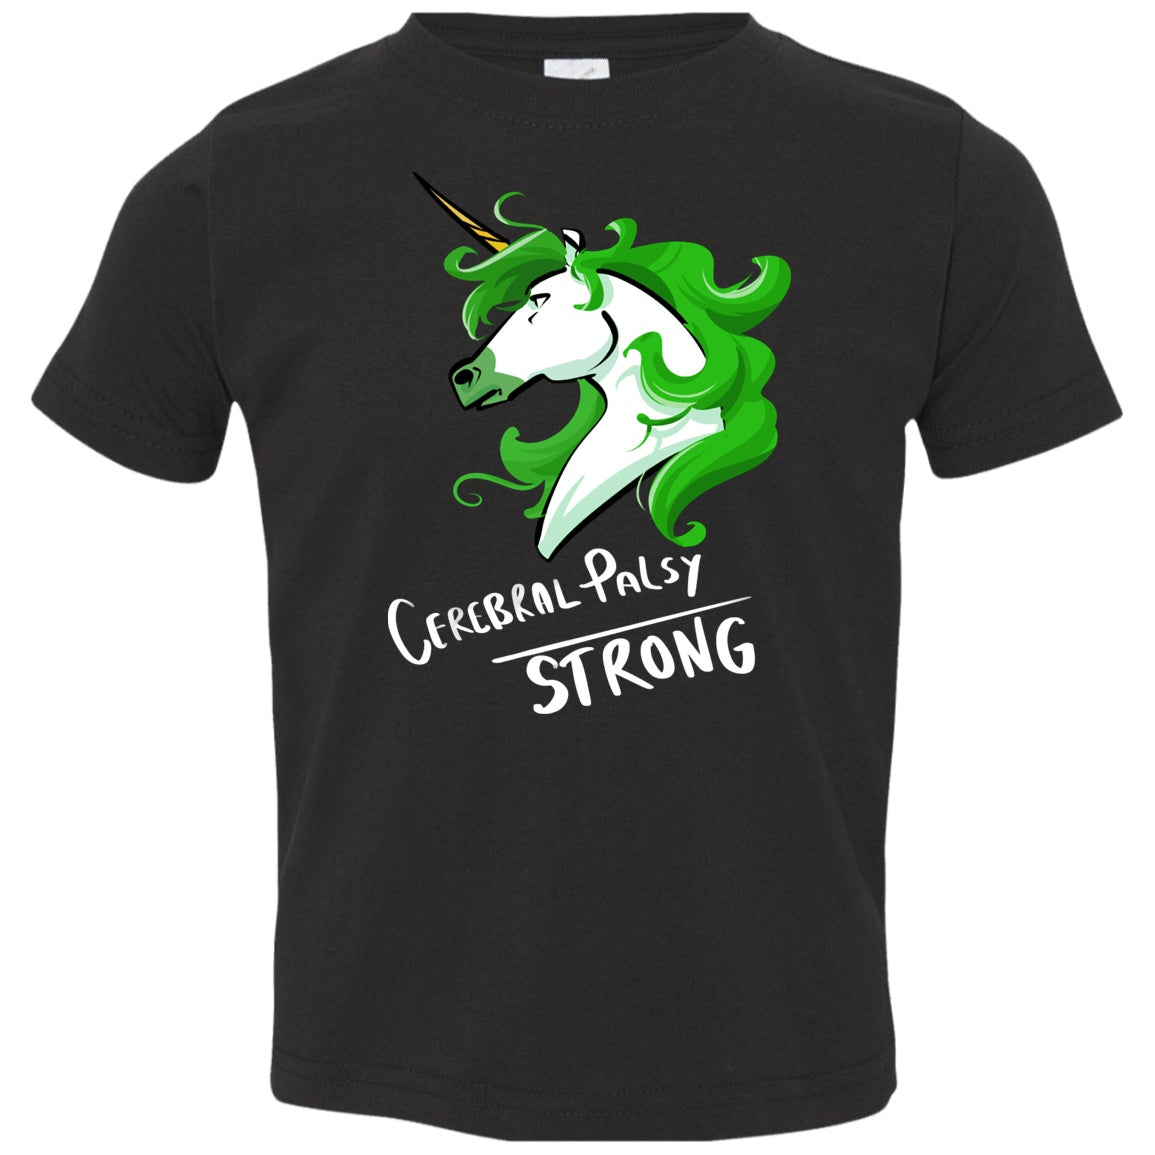 Cerebral Palsy Strong Unicorn Toddler Jersey T-Shirt - The Unchargeables